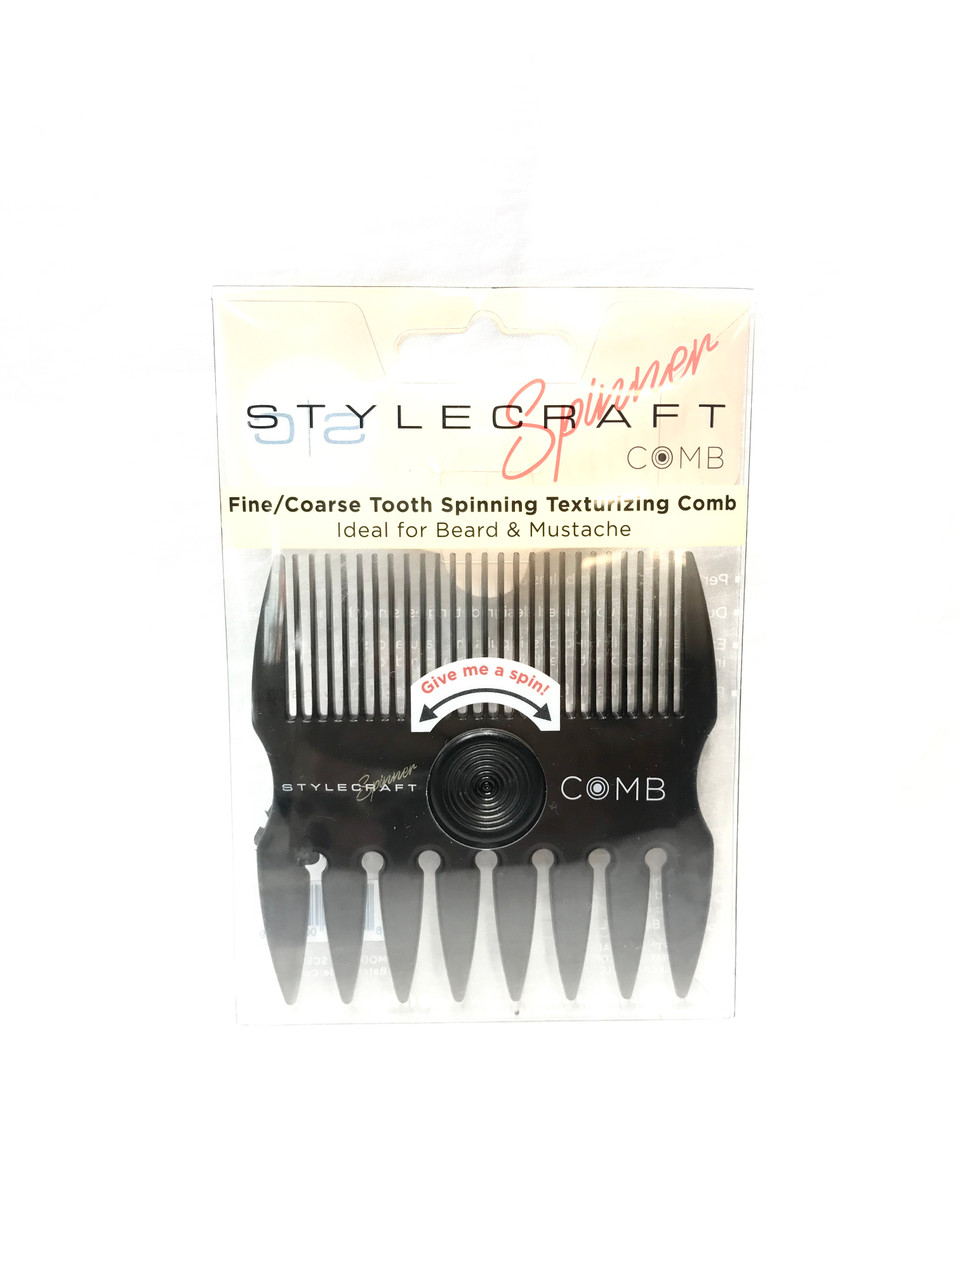 Spinner Comb by Stylecraft